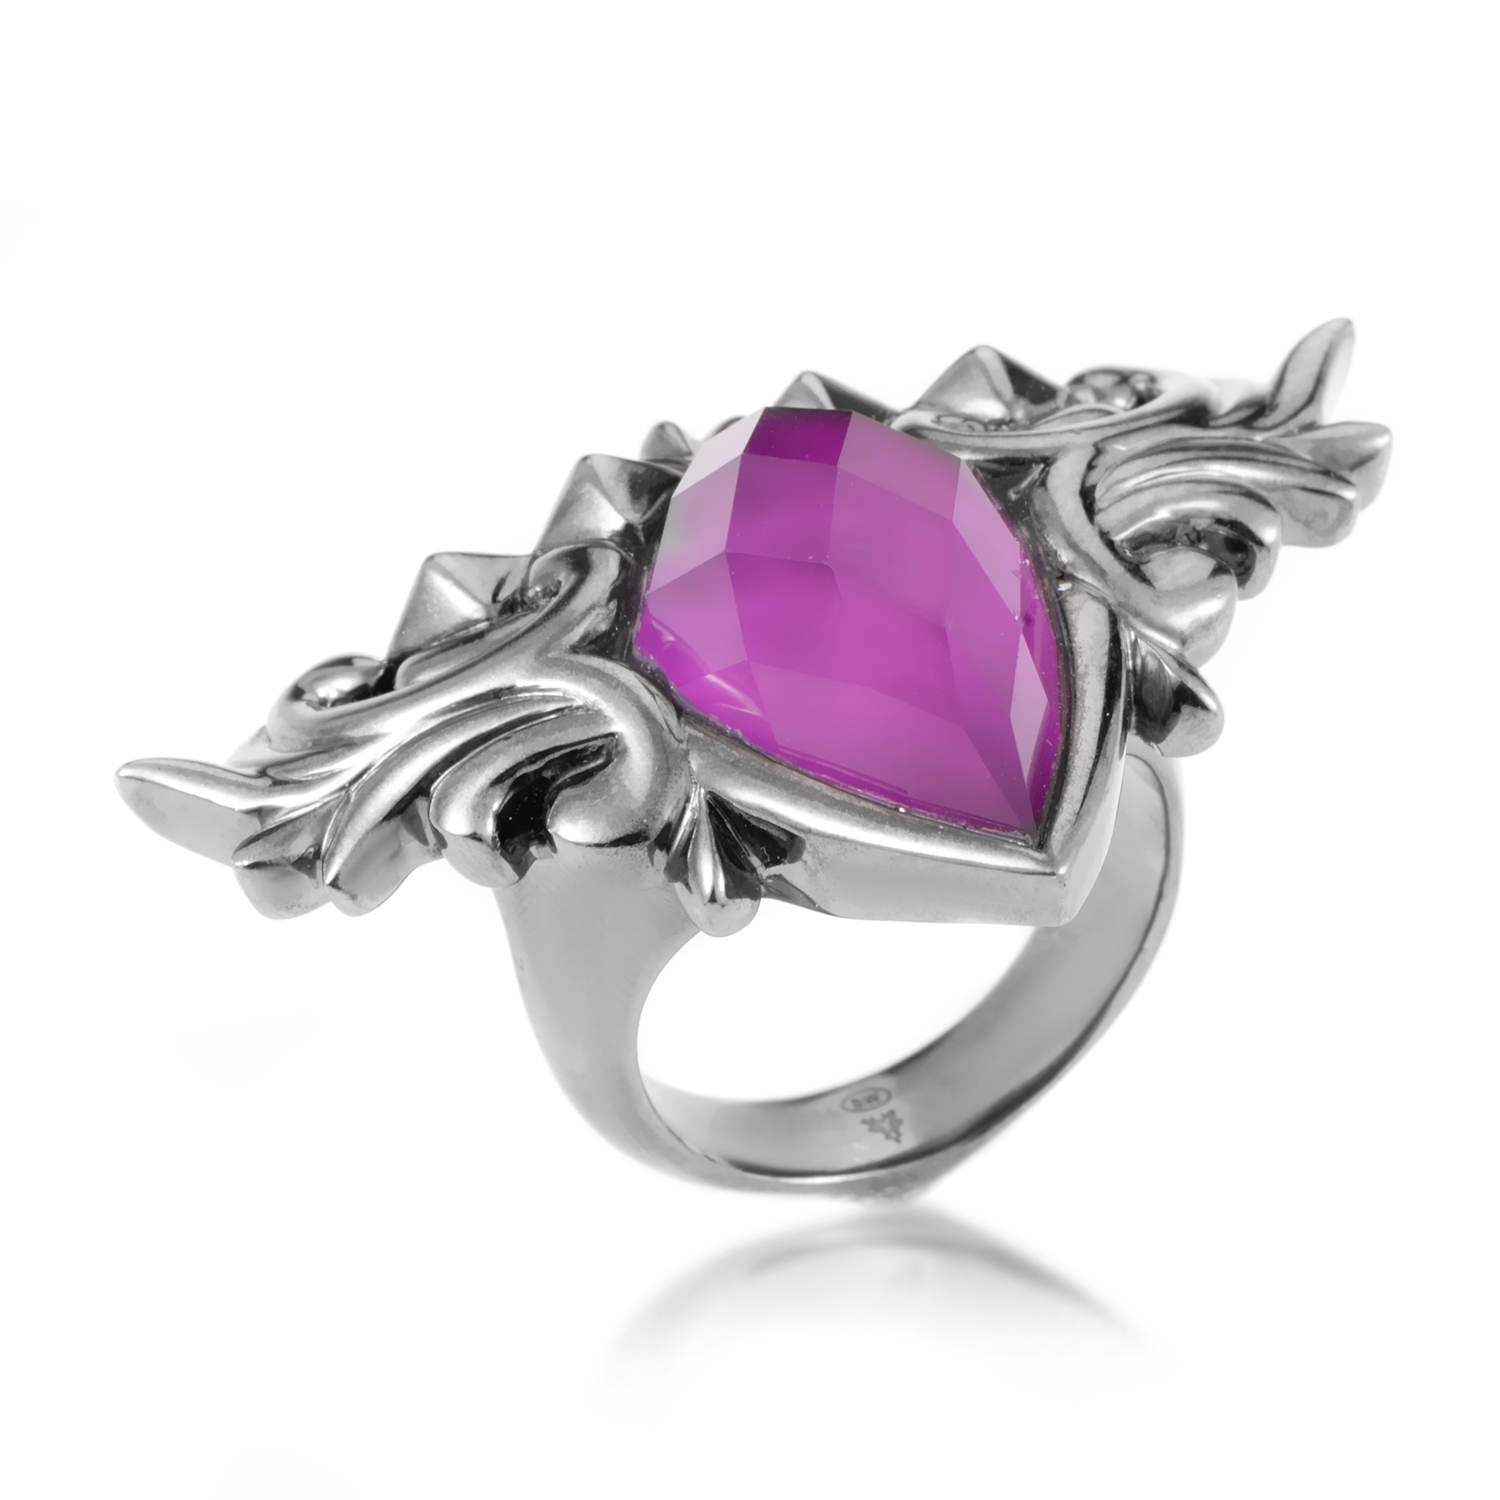 Superstud Sterling Silver and Sugilite & Quartz Ring